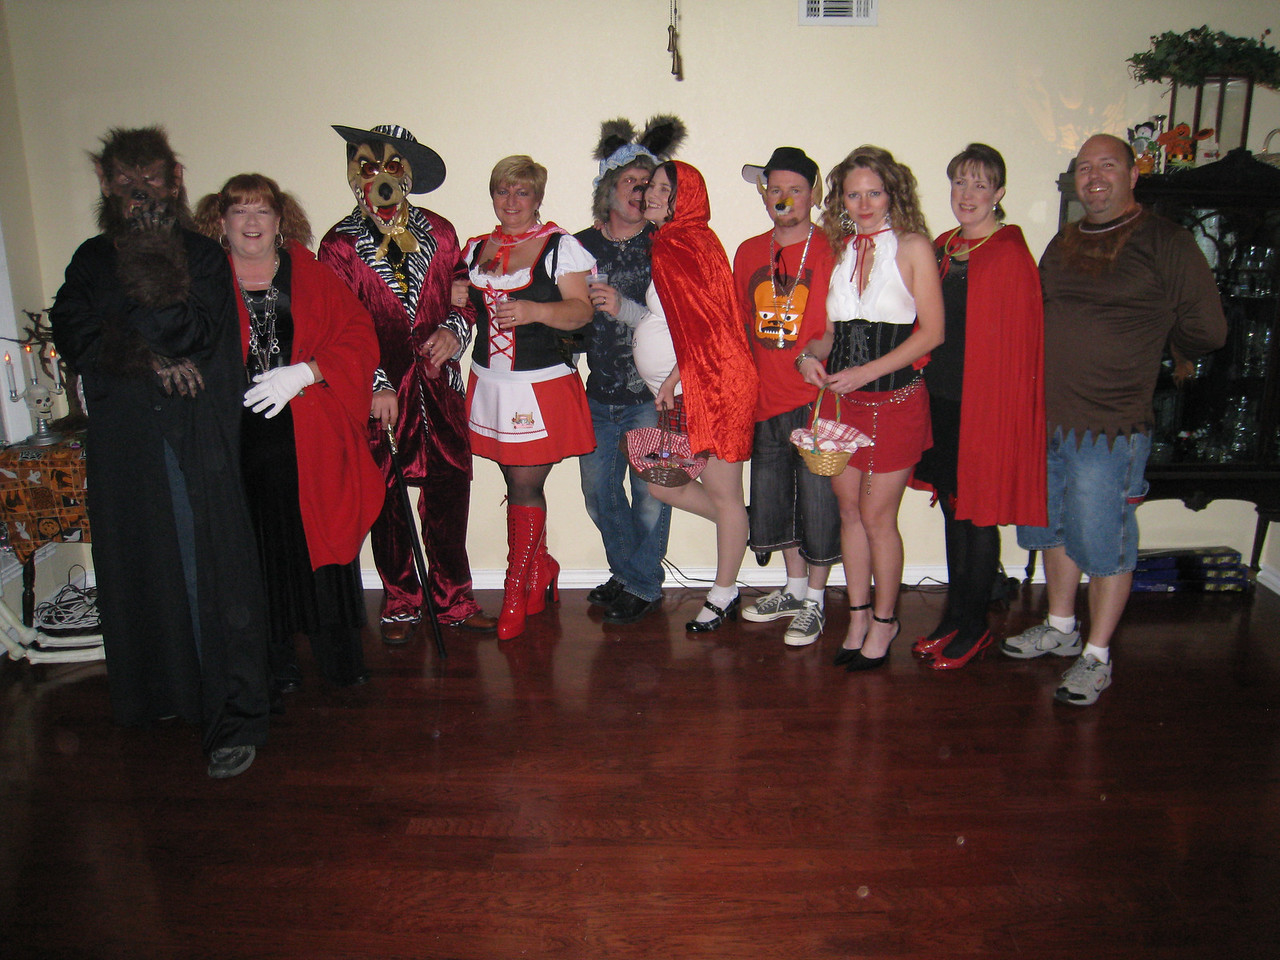 The wolves with their red riding hoods